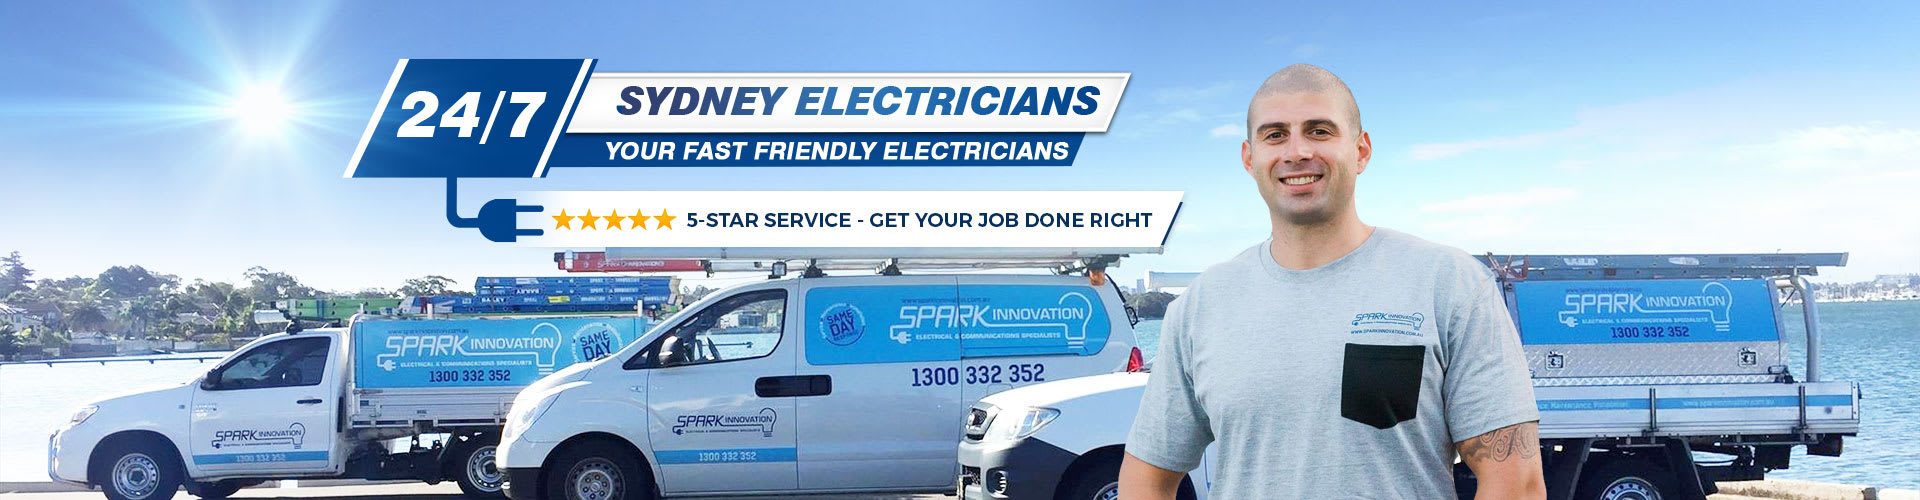 Spark Innovation Electricians